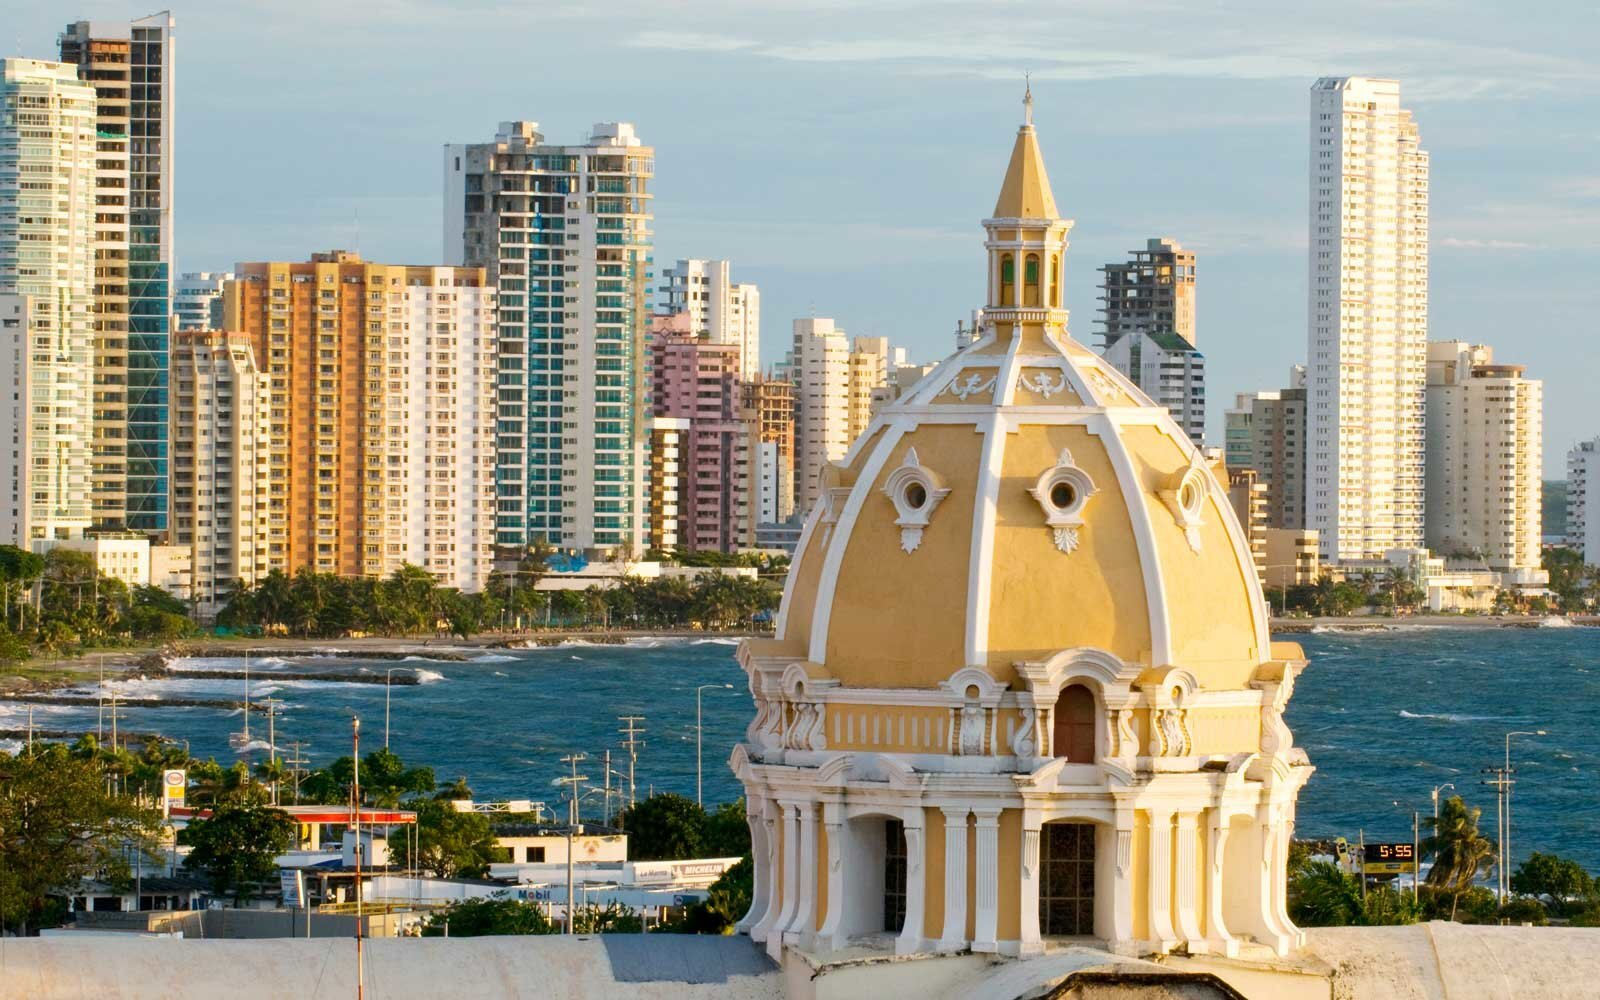 Cartagena S Old City Is Magical But Don T Miss What S New